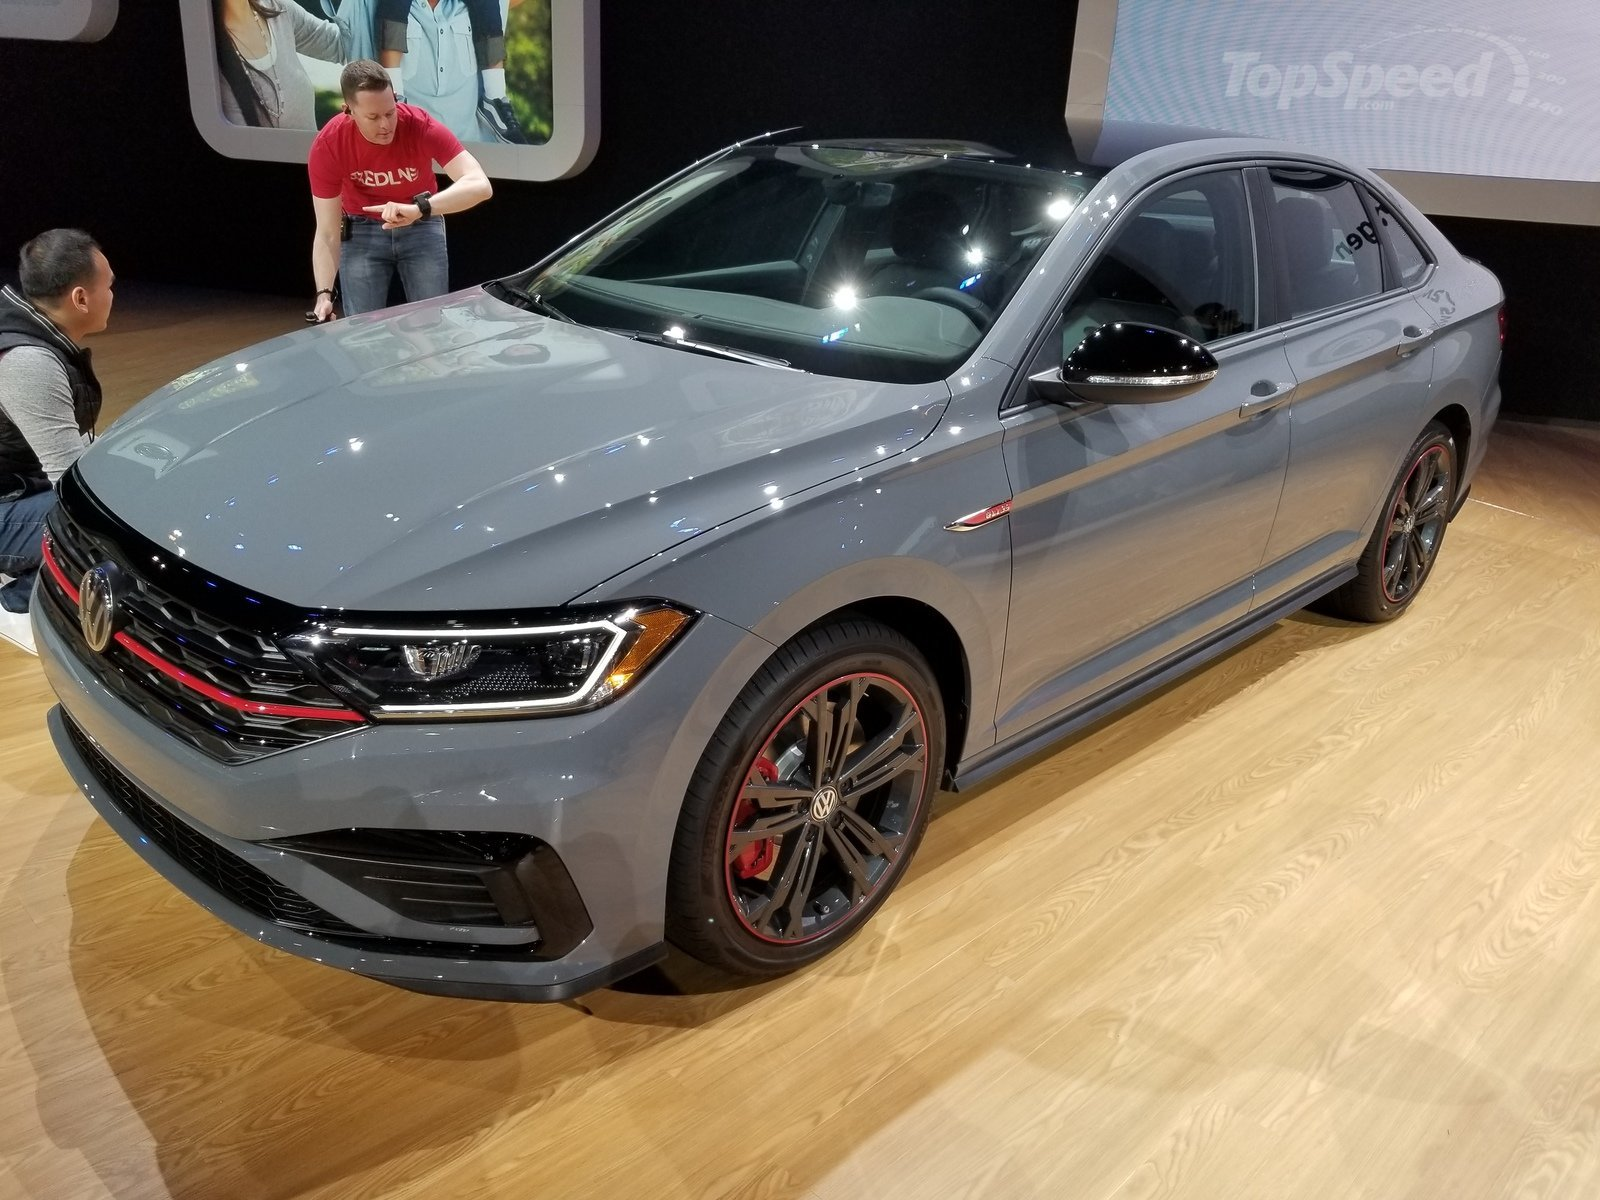 2019 Volkswagen Jetta GLI Emerges With Extra Power, Clever